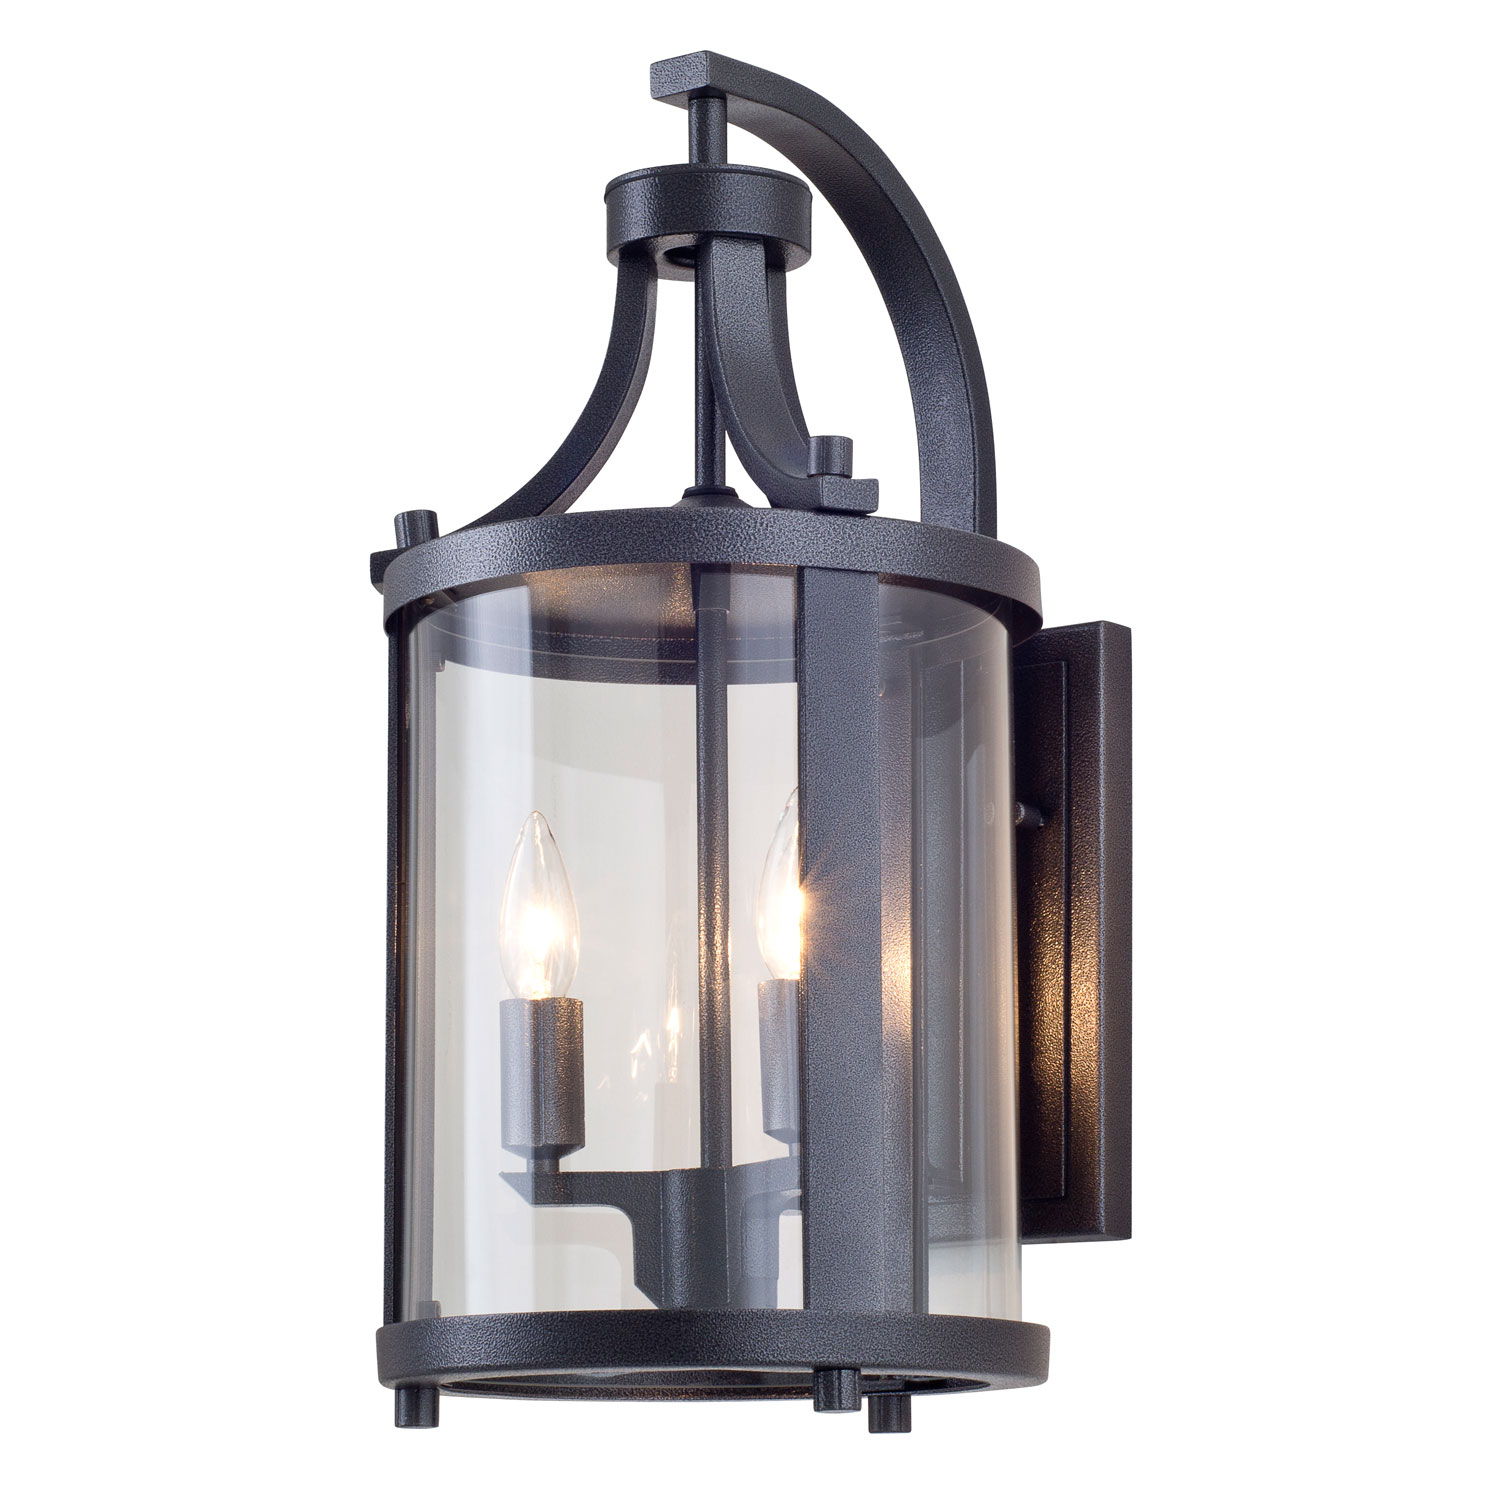 Add Decor to Your Outdoor Using Wall Mounted Light ... on Outdoor Lighting Fixtures Wall Mounted id=20108